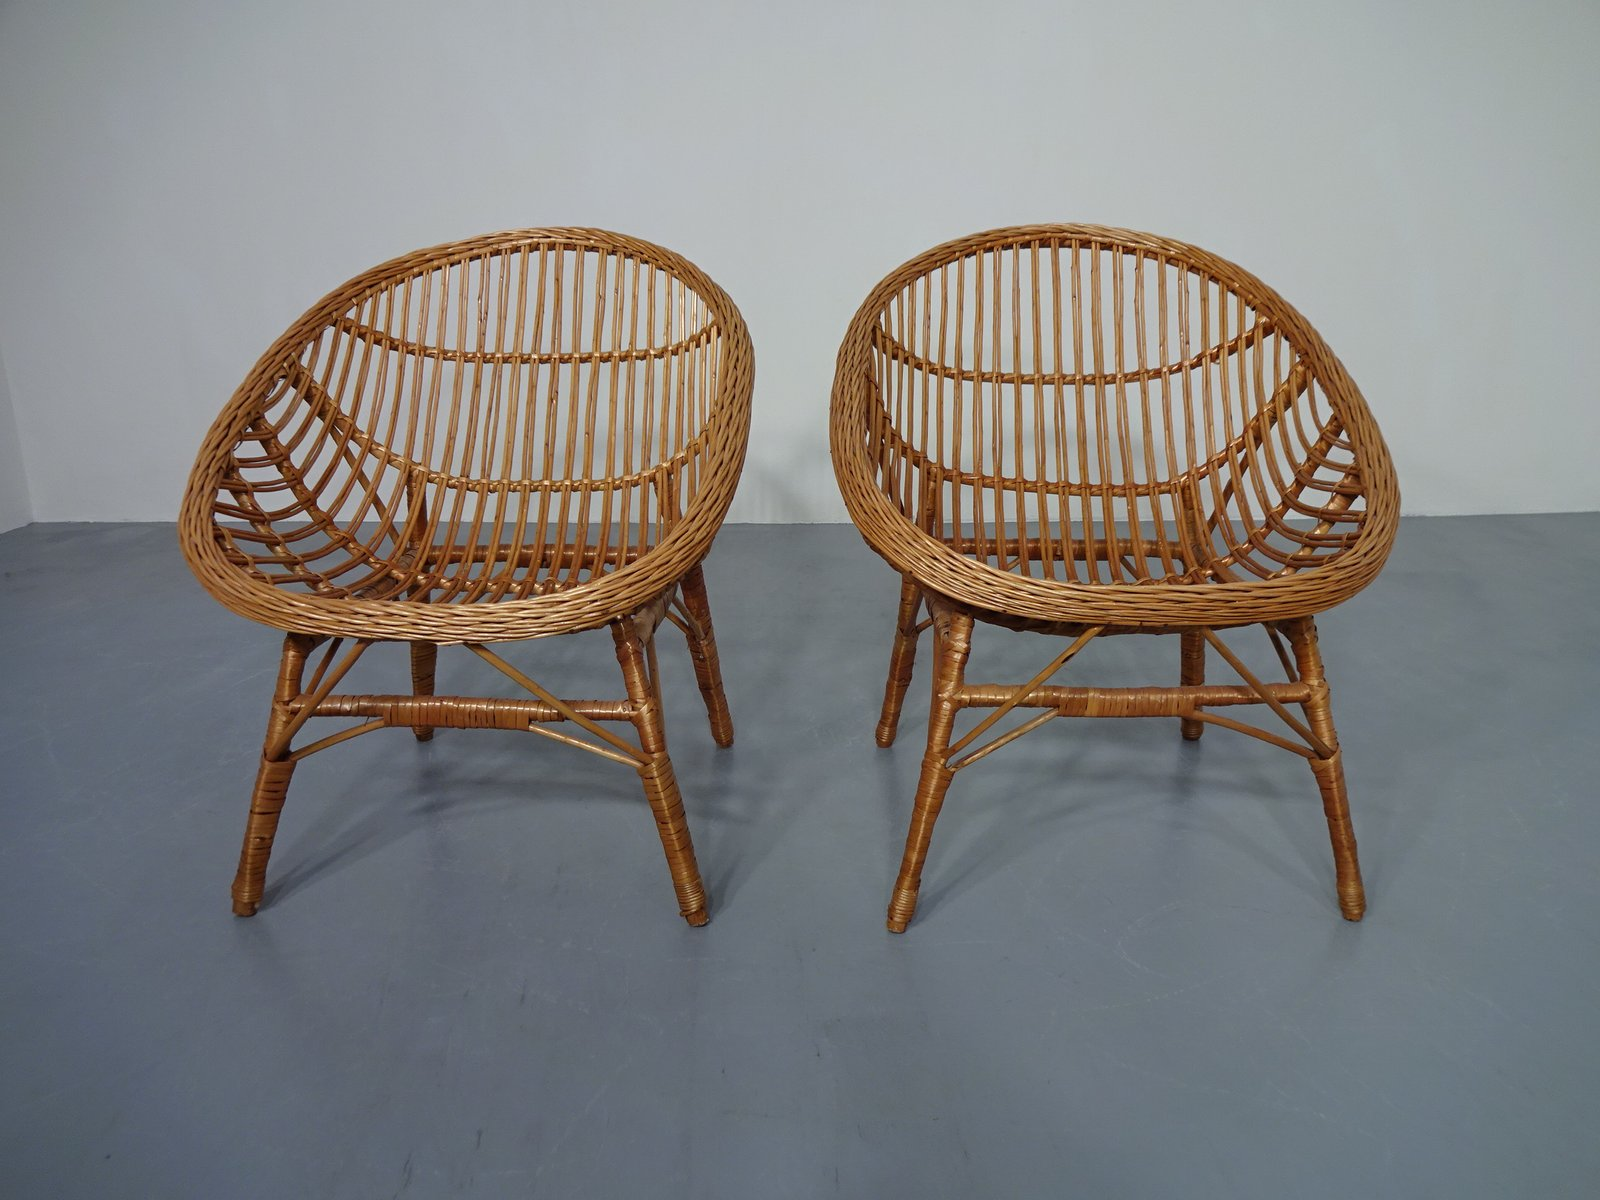 Bamboo Chairs Rattan Bamboo Chairs 1960s Set Of 2